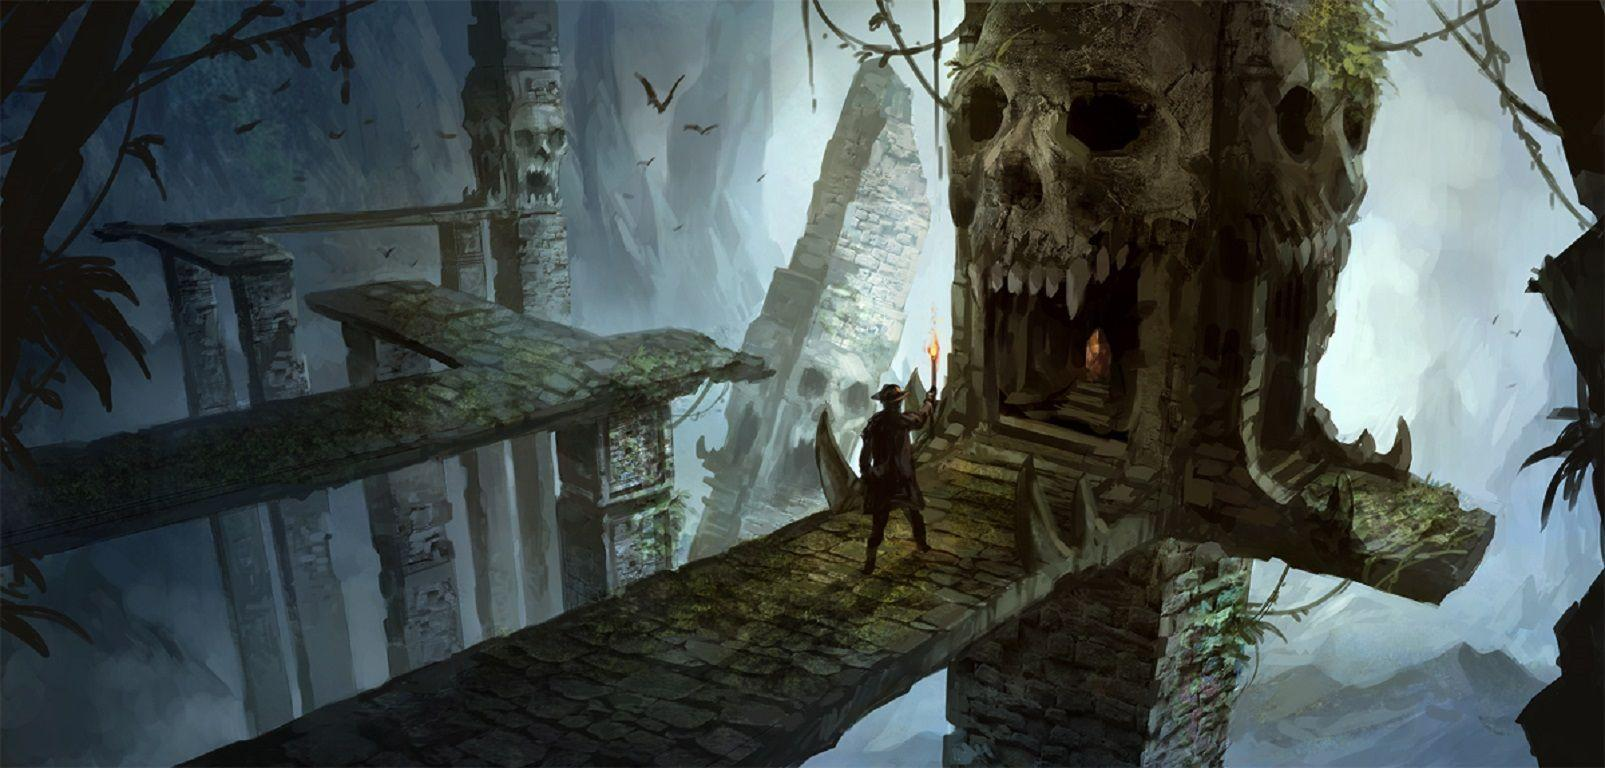 Fantasy Dungeons & Dragons Wallpapers 1605x768 px Free Download